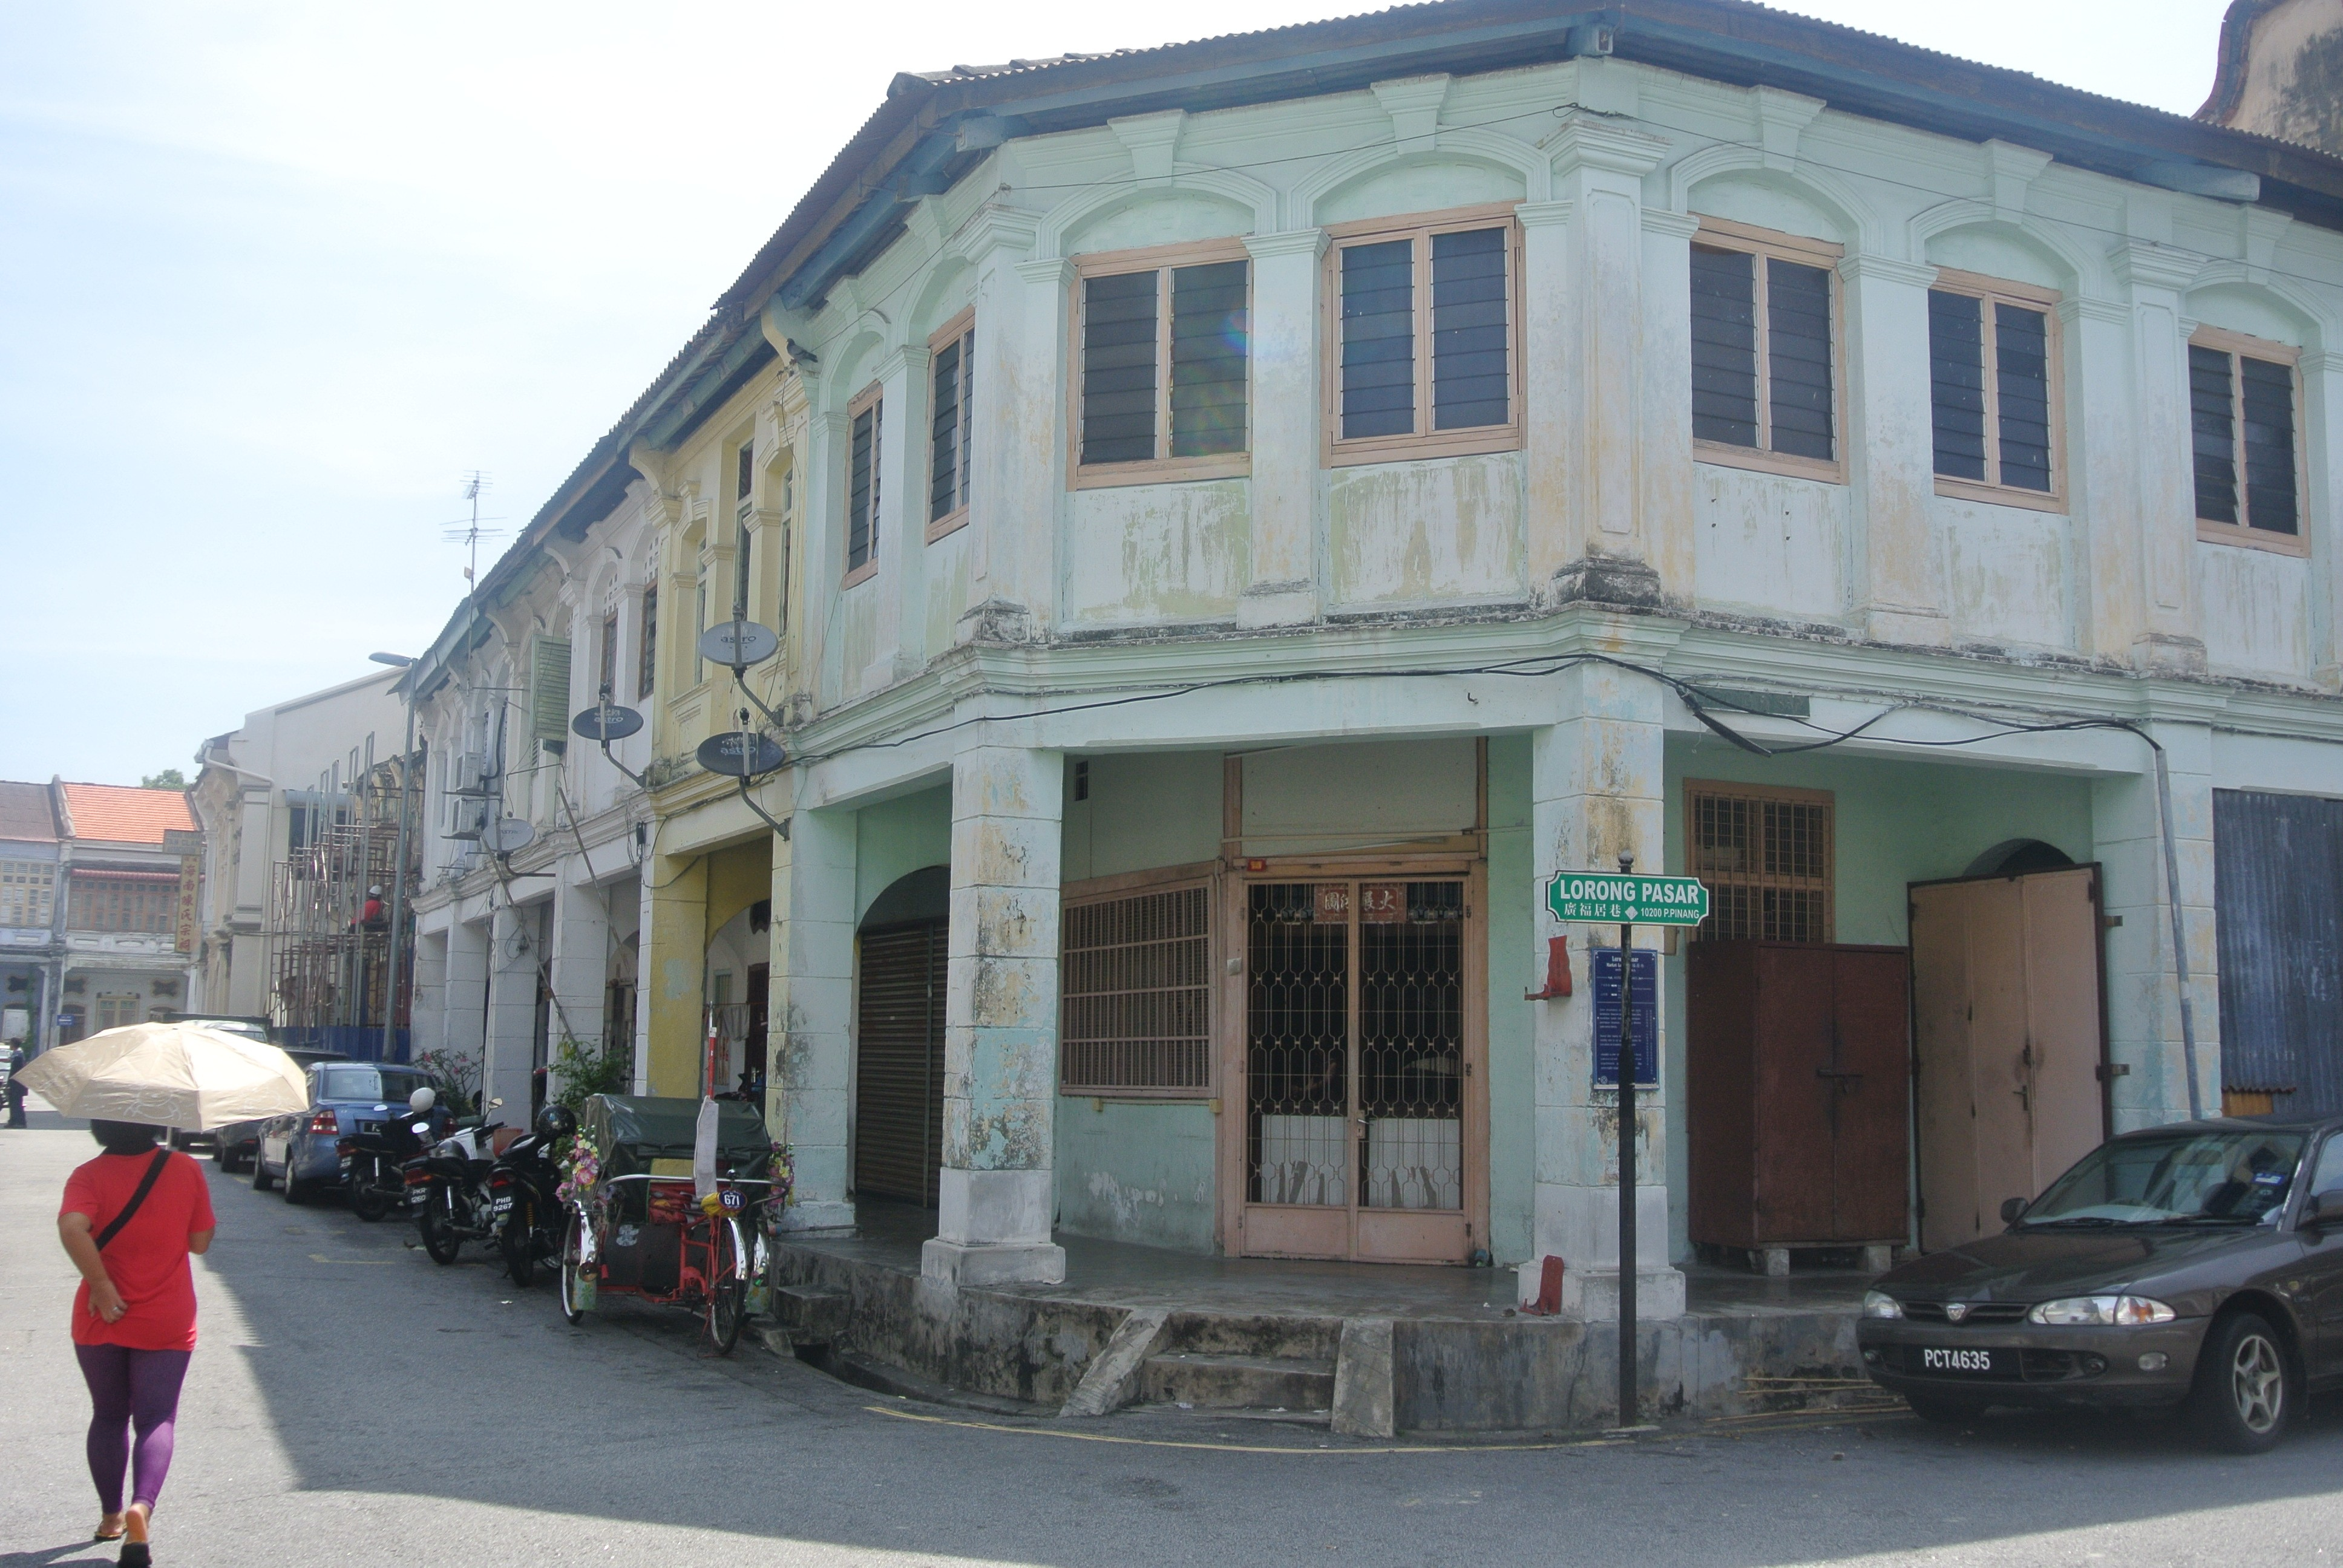 2014 Travel Review: Scene in Georgetown's Old Town, Penang, Malaysia | Todd's Travels Travel Blog